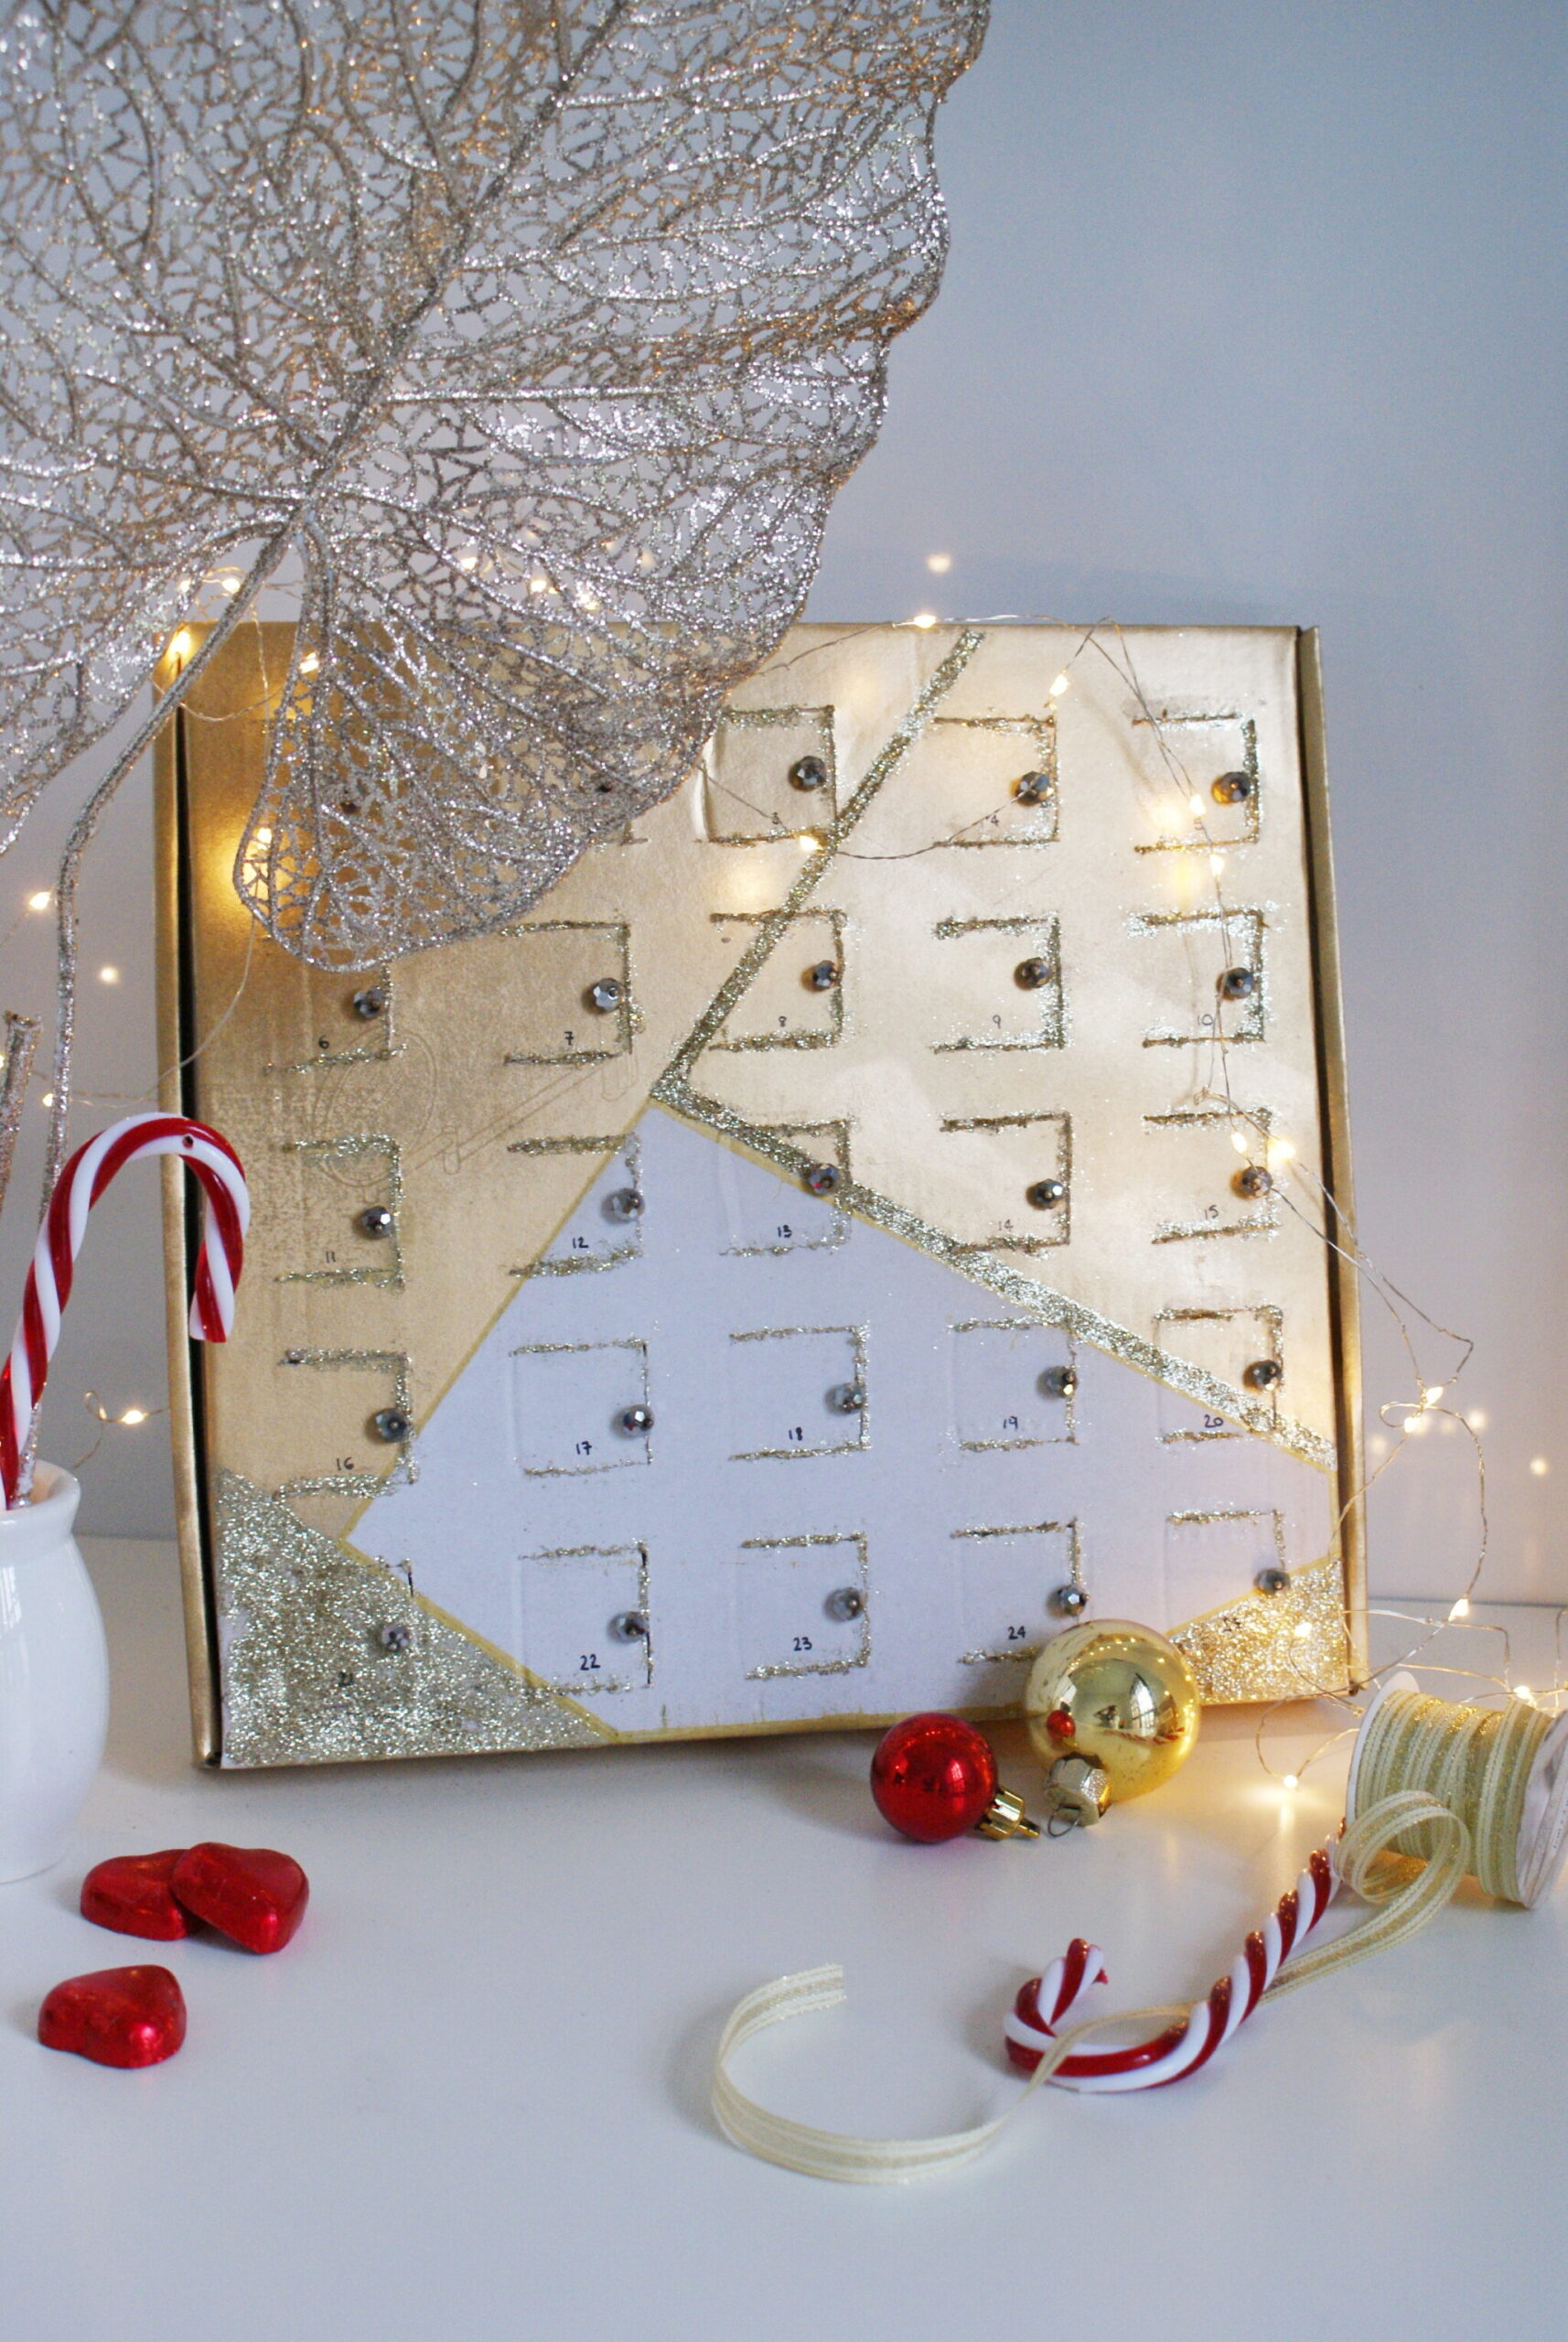 diy advent calendar chocolate box reusable last minute idea craft handmade easy francinesplaceblog